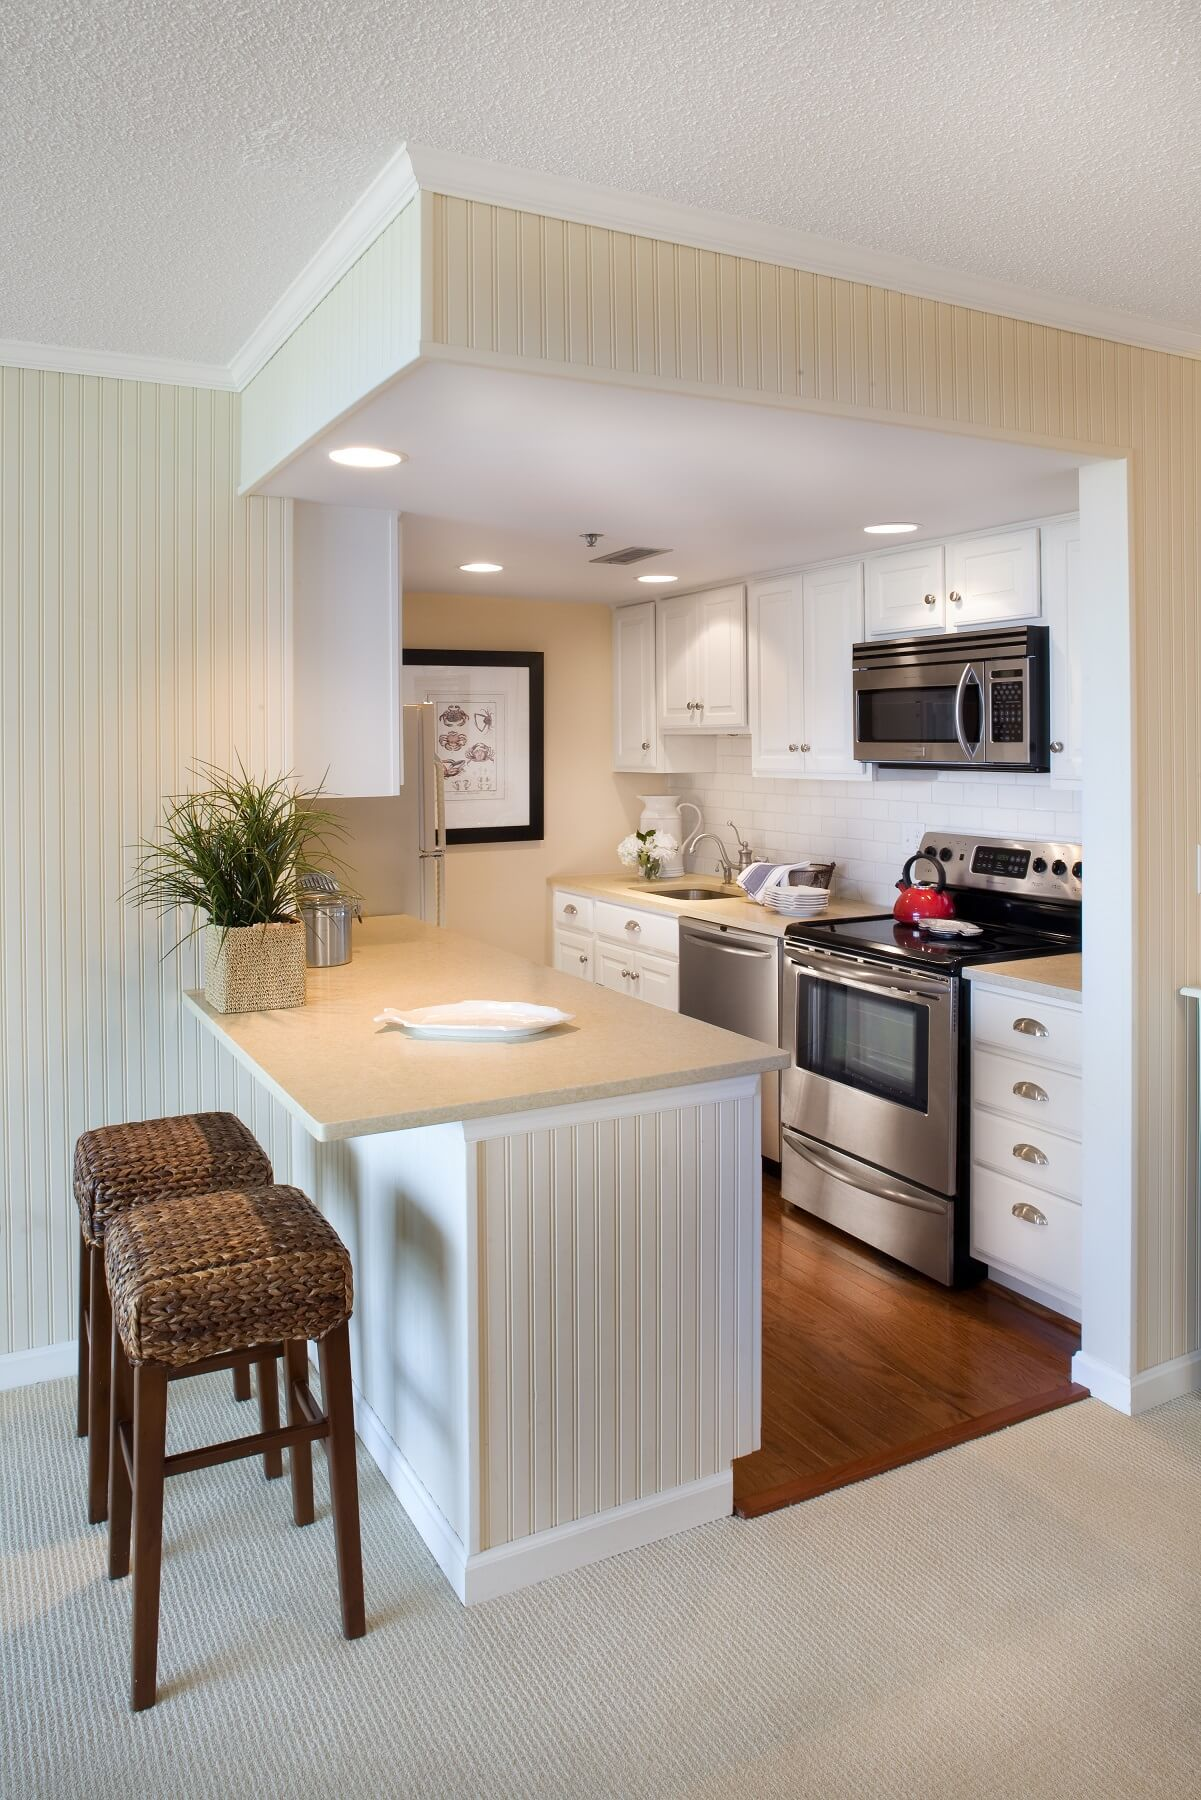 Interior Design Of Kitchen Room: Vertical Lines Adding Height To The Room